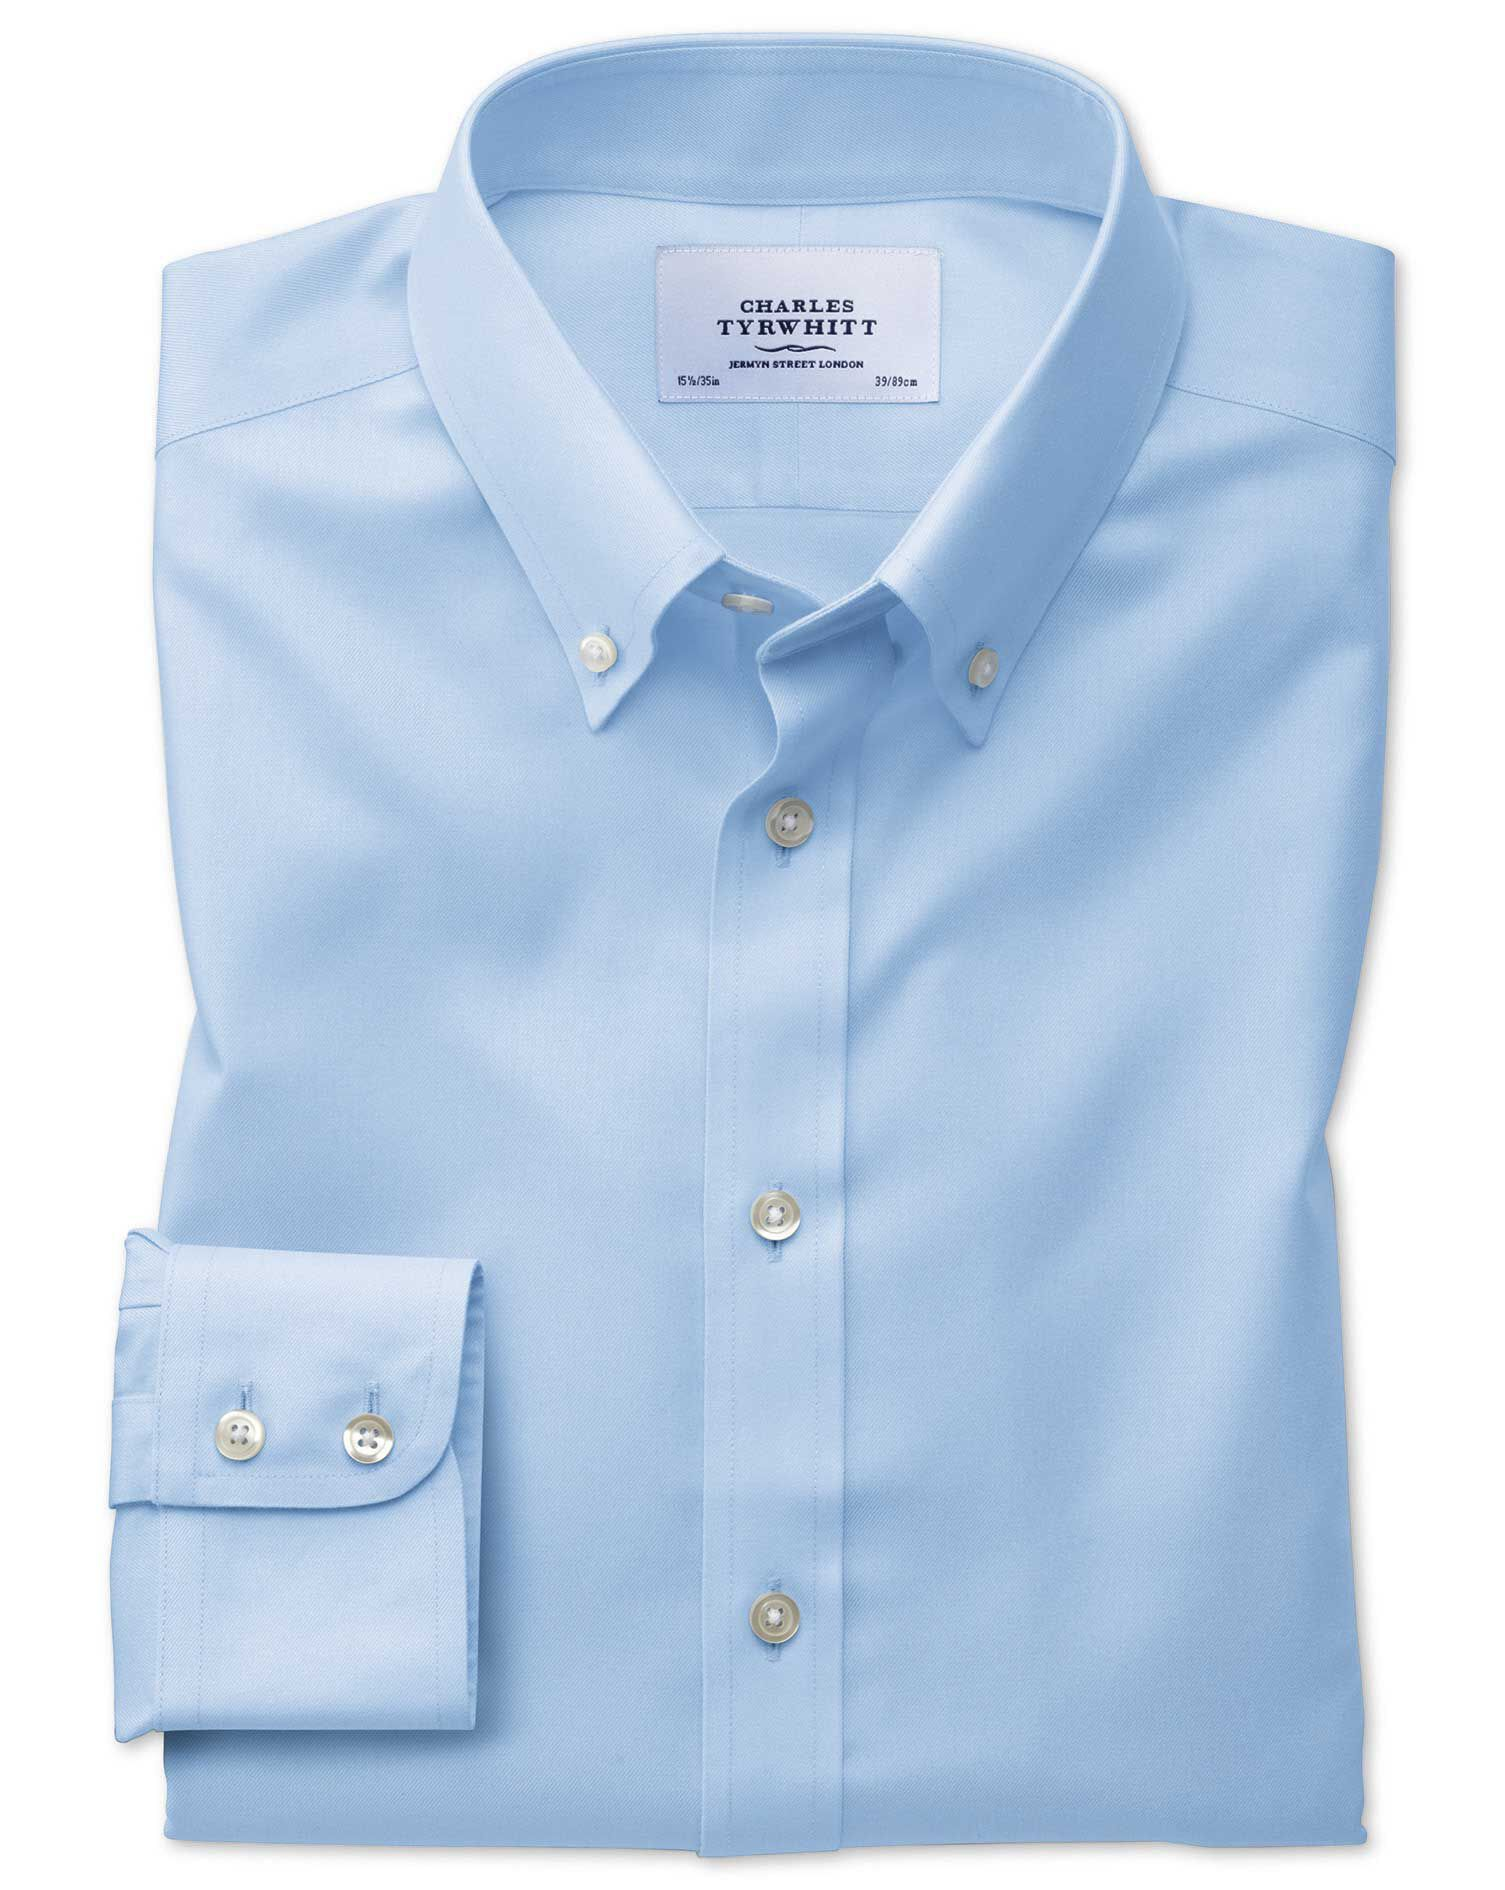 Classic Fit Button-Down Non-Iron Twill Sky Blue Cotton Formal Shirt Single Cuff Size 15.5/35 by Char